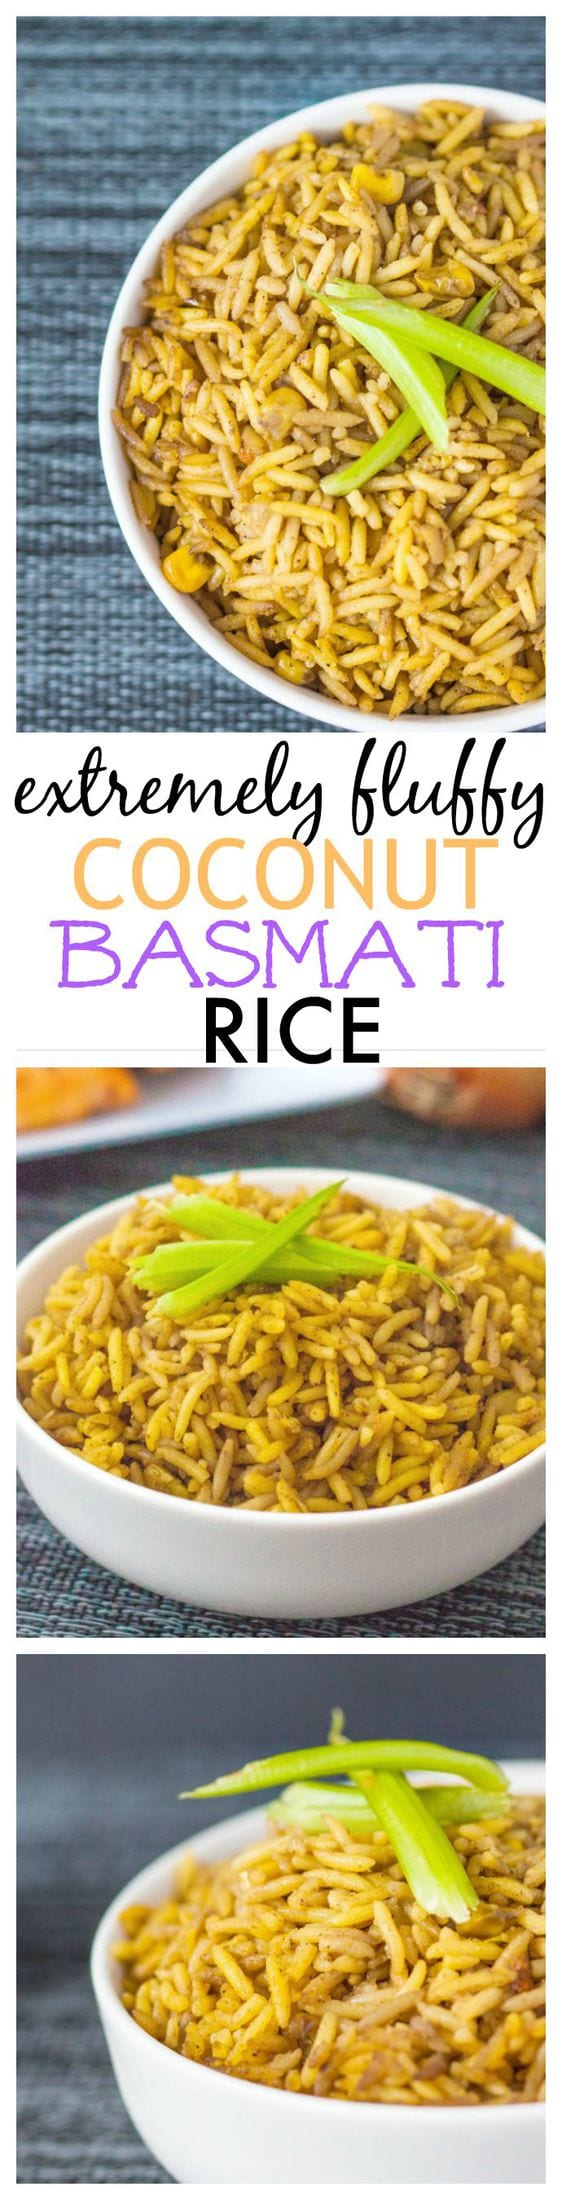 aged basmati rice cooking instructions